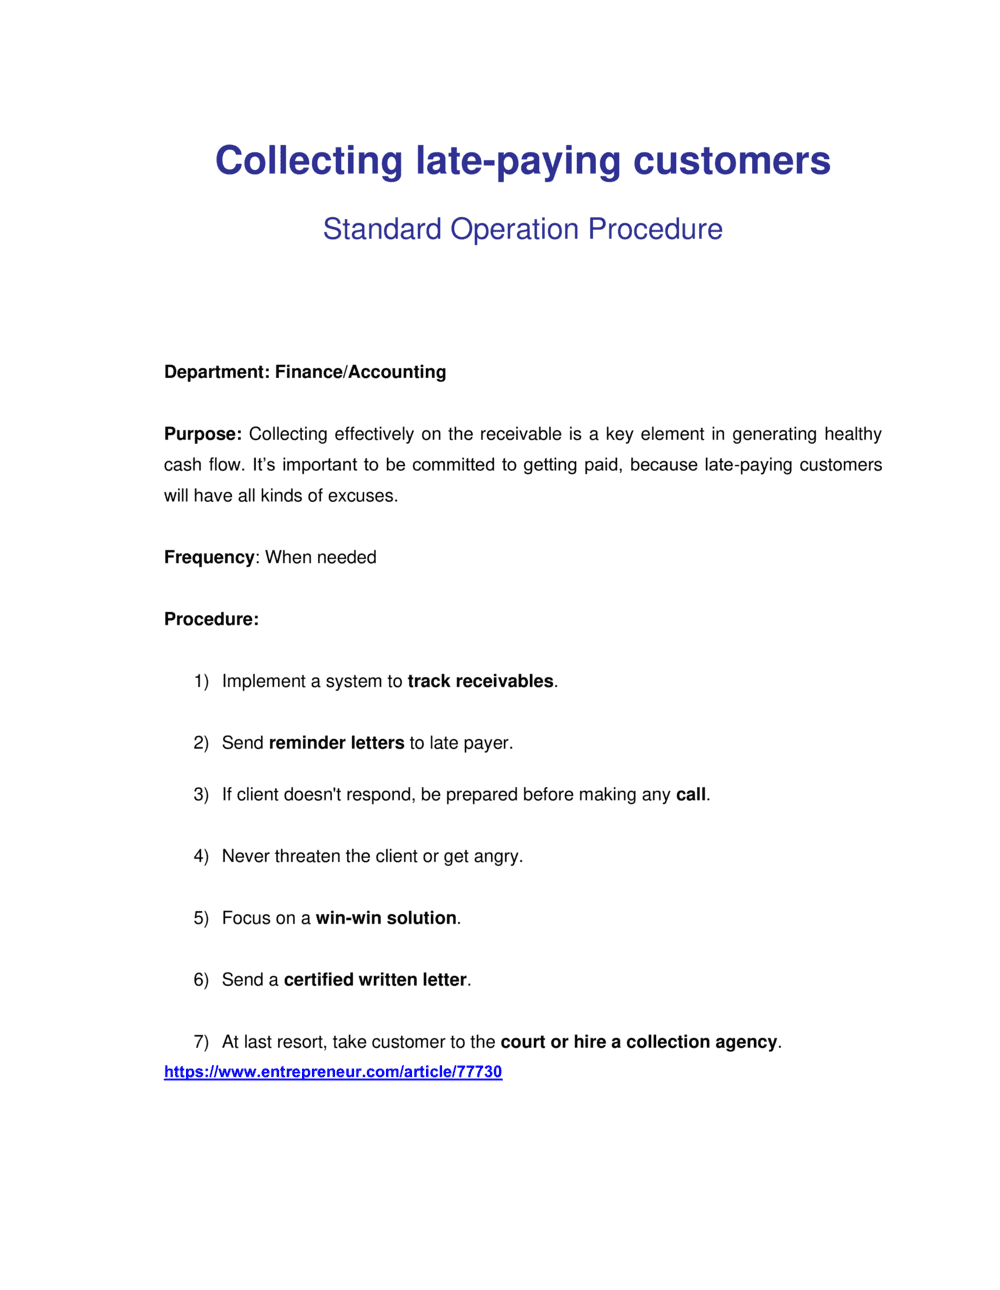 Business-in-a-Box's How to Collect Late Paying Customers